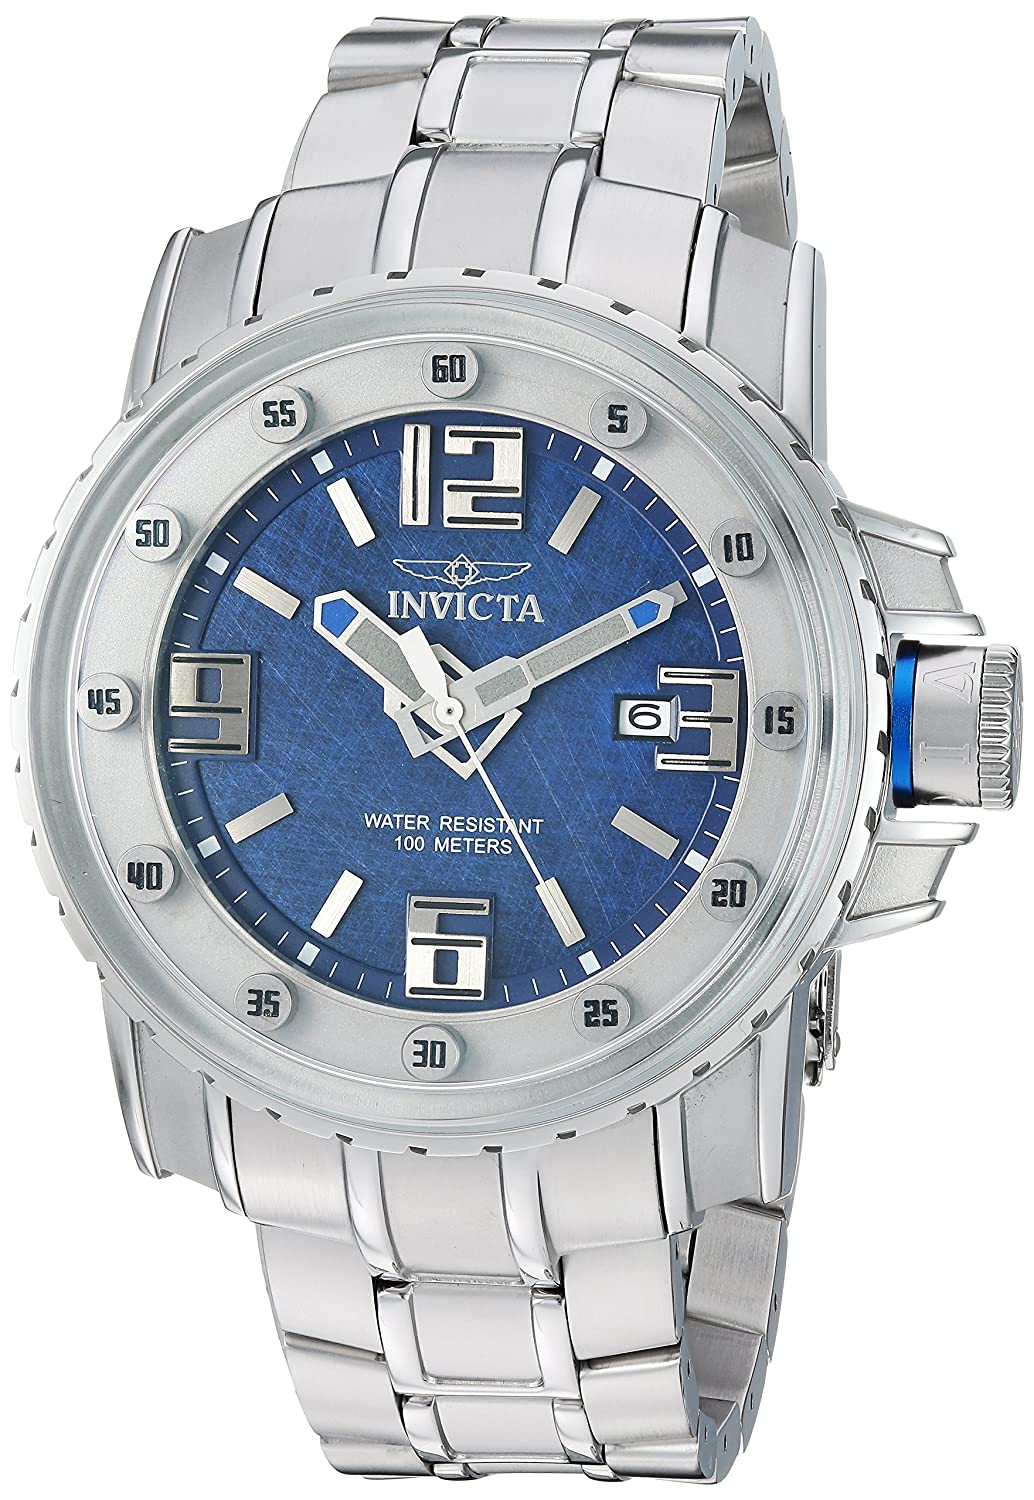 Invicta Men 's ' Pro Diver ' AutomaticステンレススチールCasual Watch, Color : silver-toned (モデル: 26027 ) B079D37ZVW